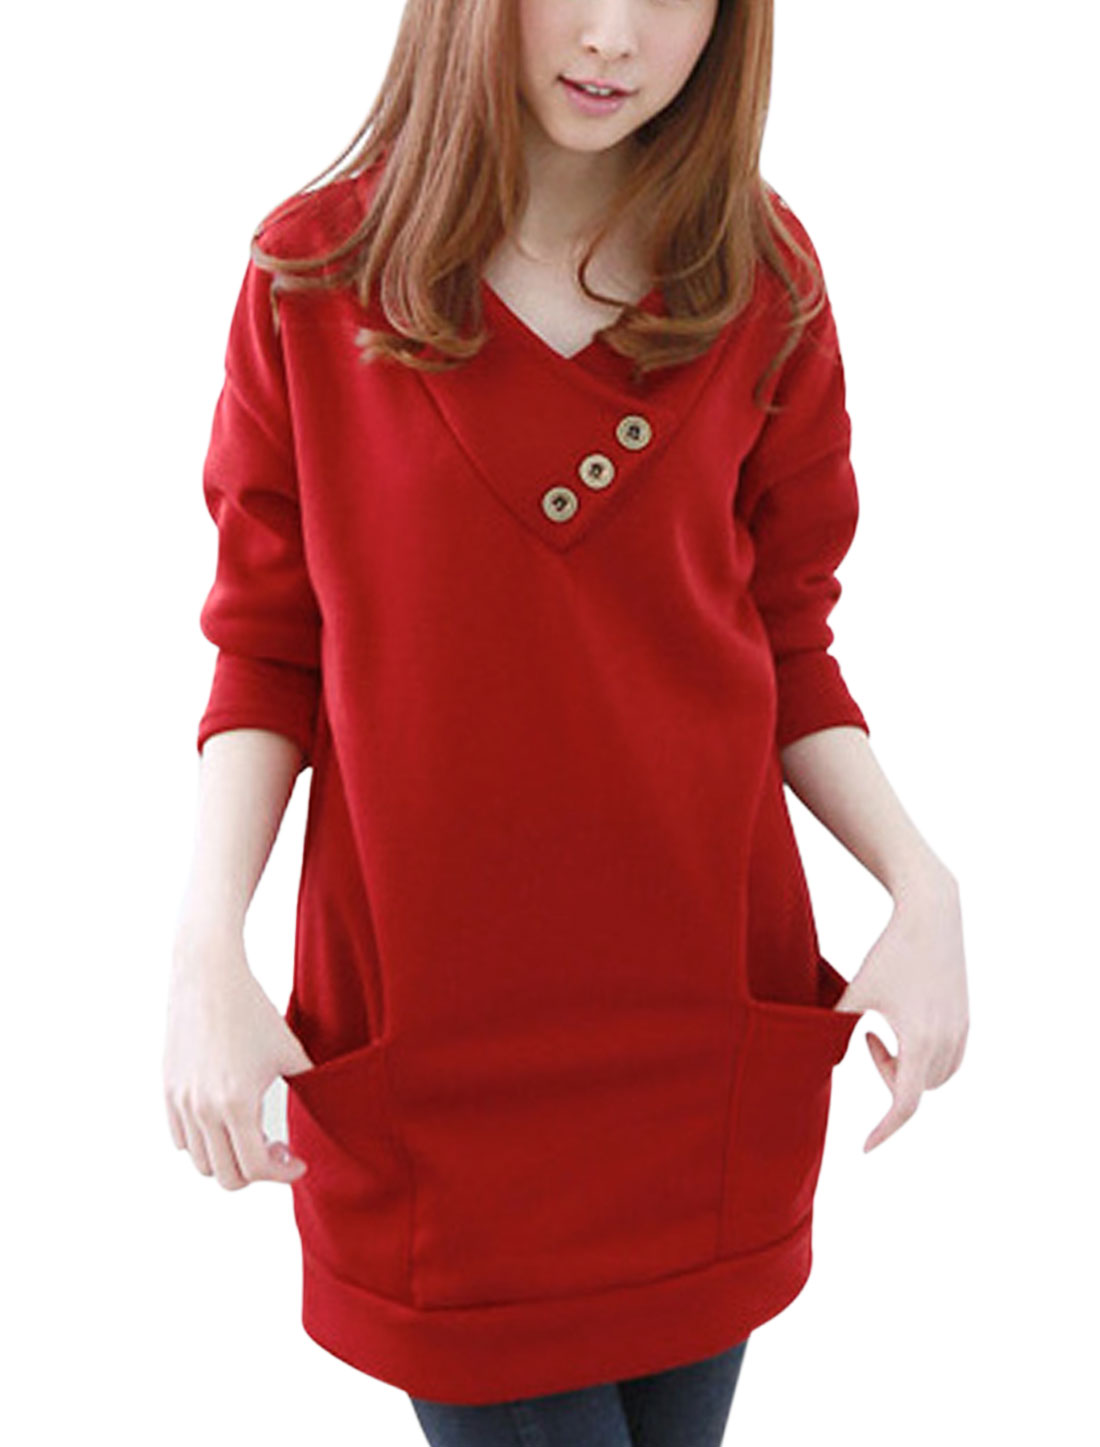 Hooded V Neckline Batwing Sleeves Casual Tunic Top for Women Warm Red XS